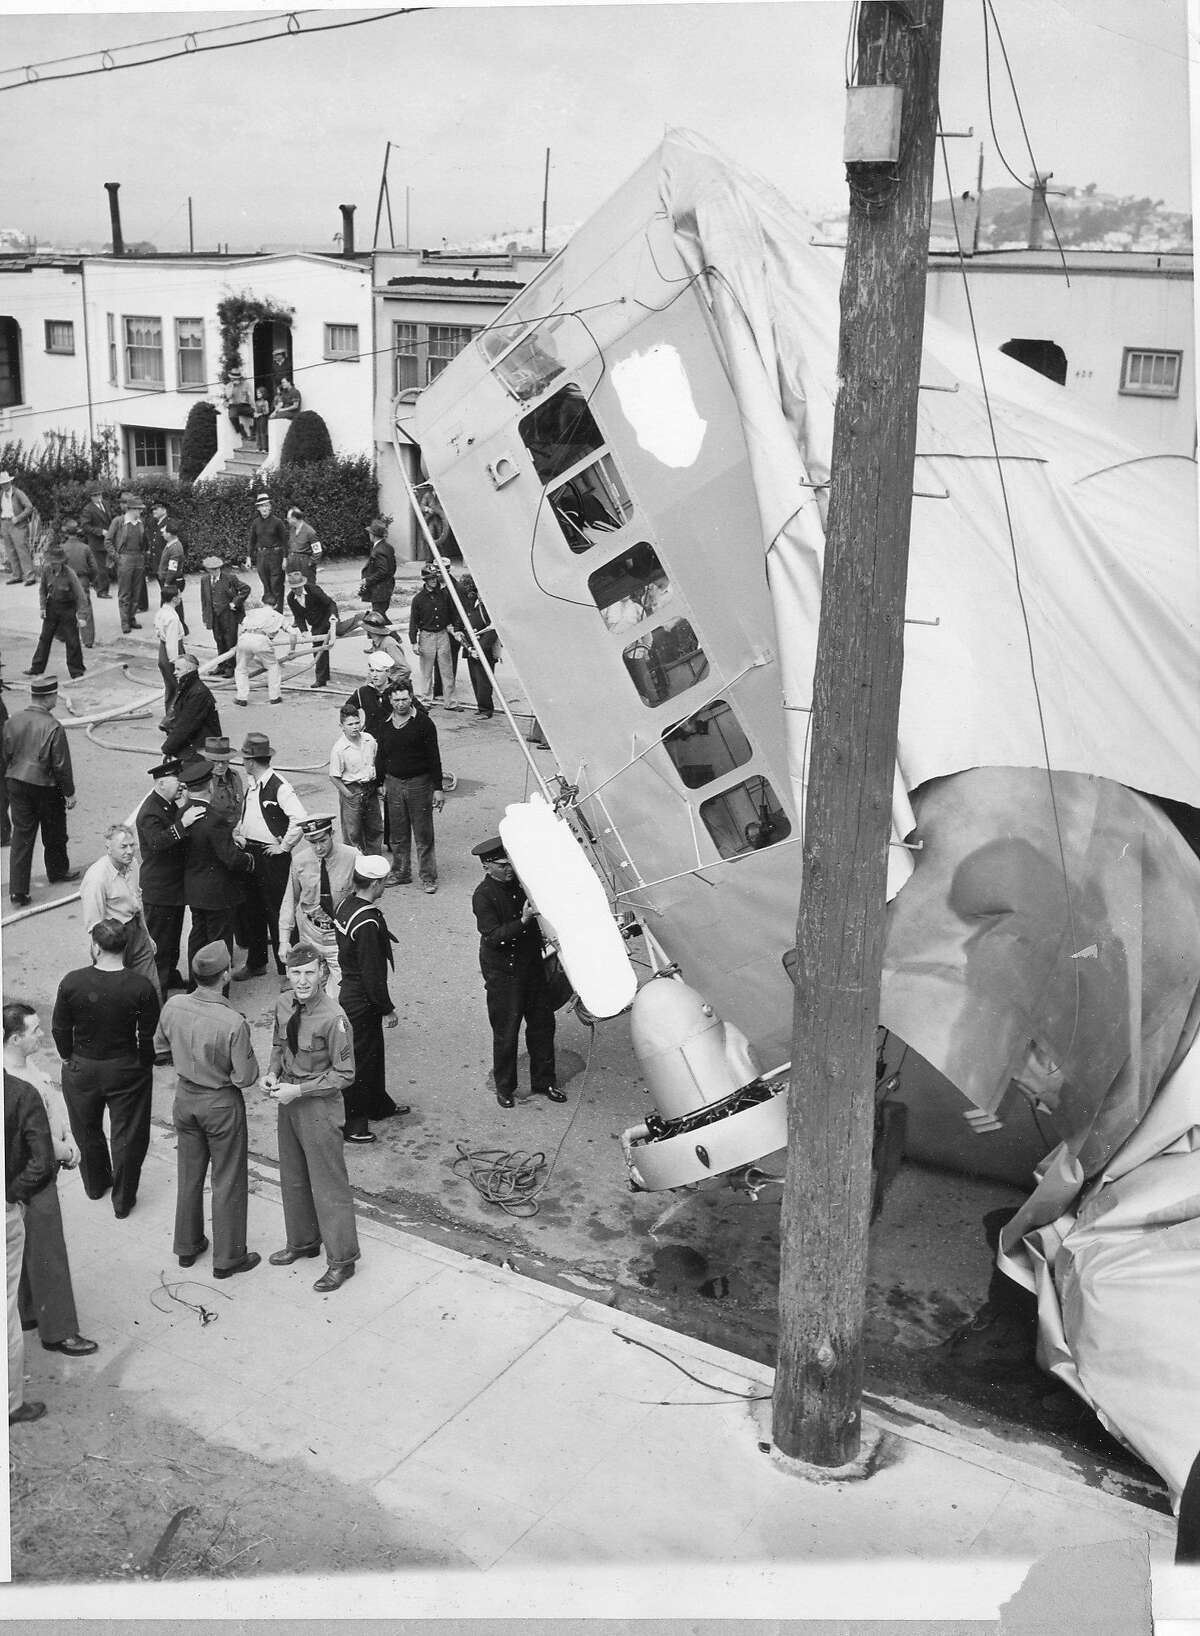 Crowds gathered to look at the crashed, empty blimp. Officials from the Navy came around and confiscated photographs from the crowd.